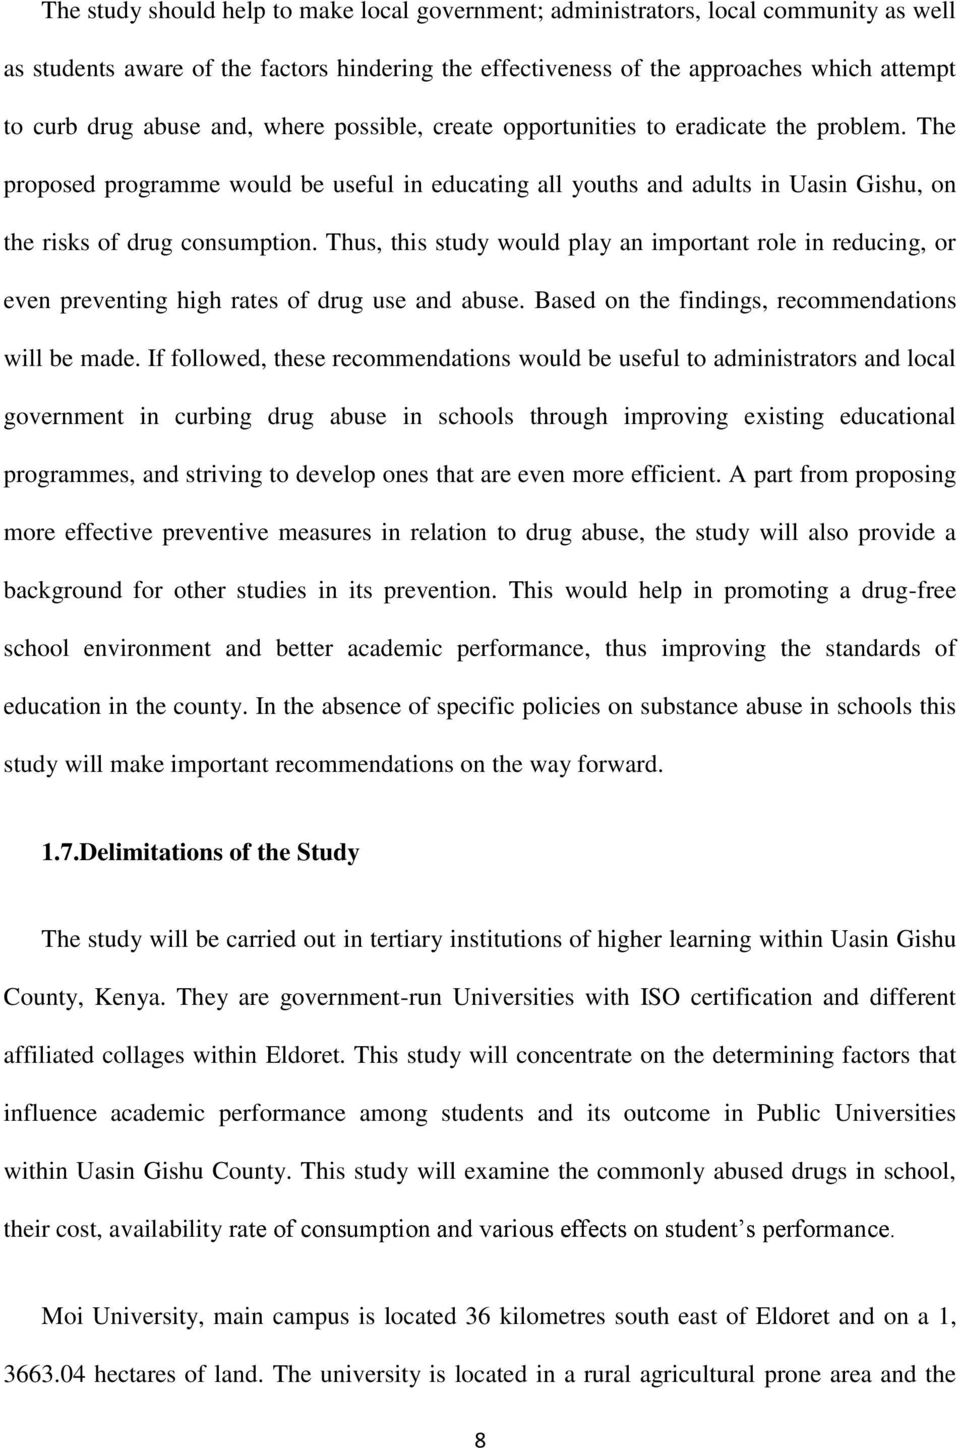 002 Drug Addiction Essay Drugs Essays Topics Abuse College Pa In Students Stunning Pdf Full